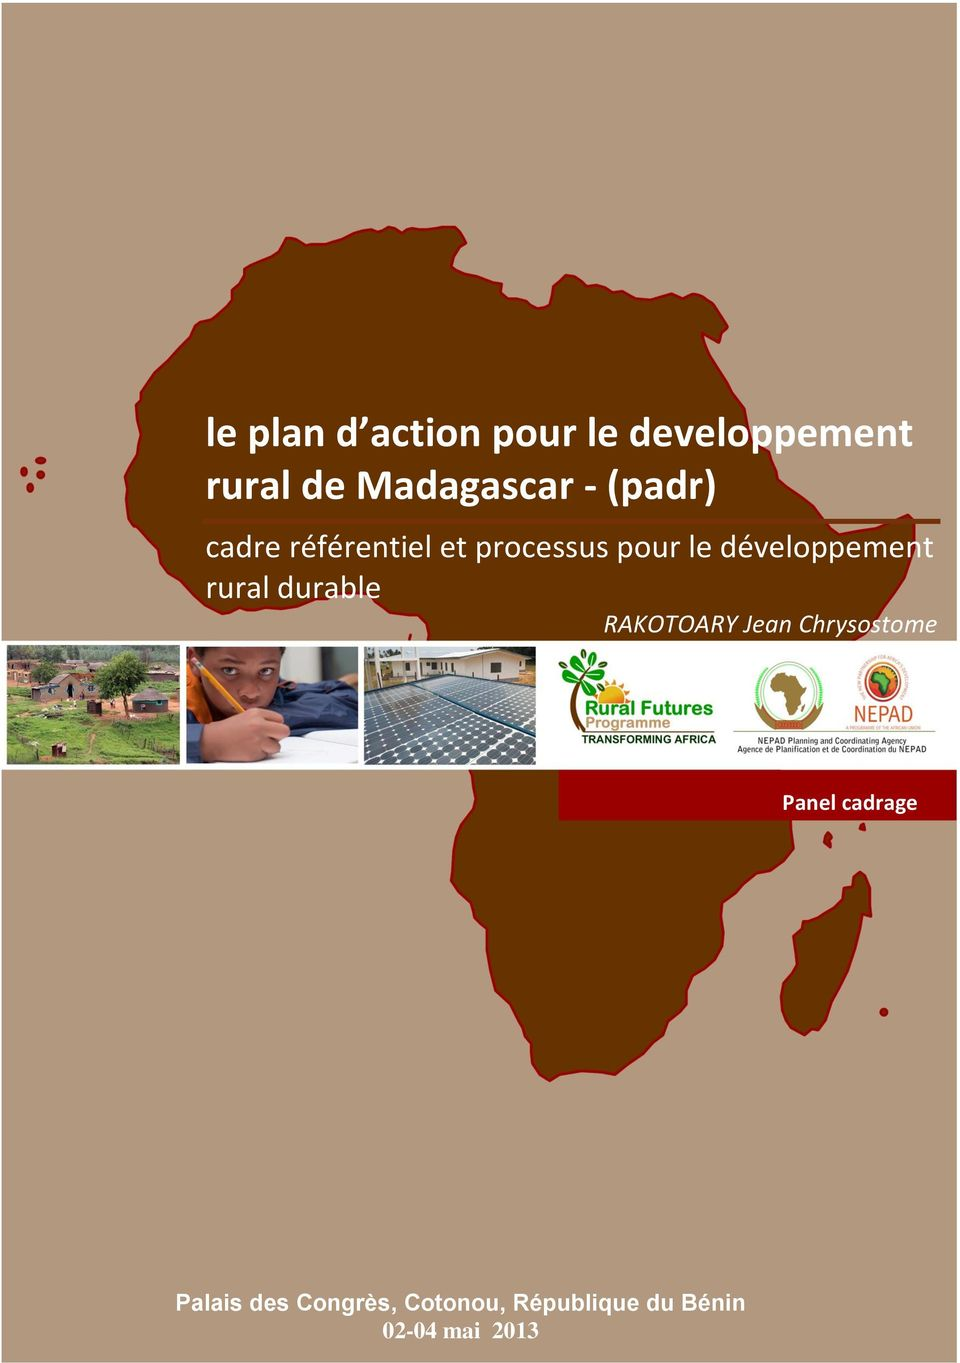 développement rural durable RAKOTOARY Jean Chrysostome